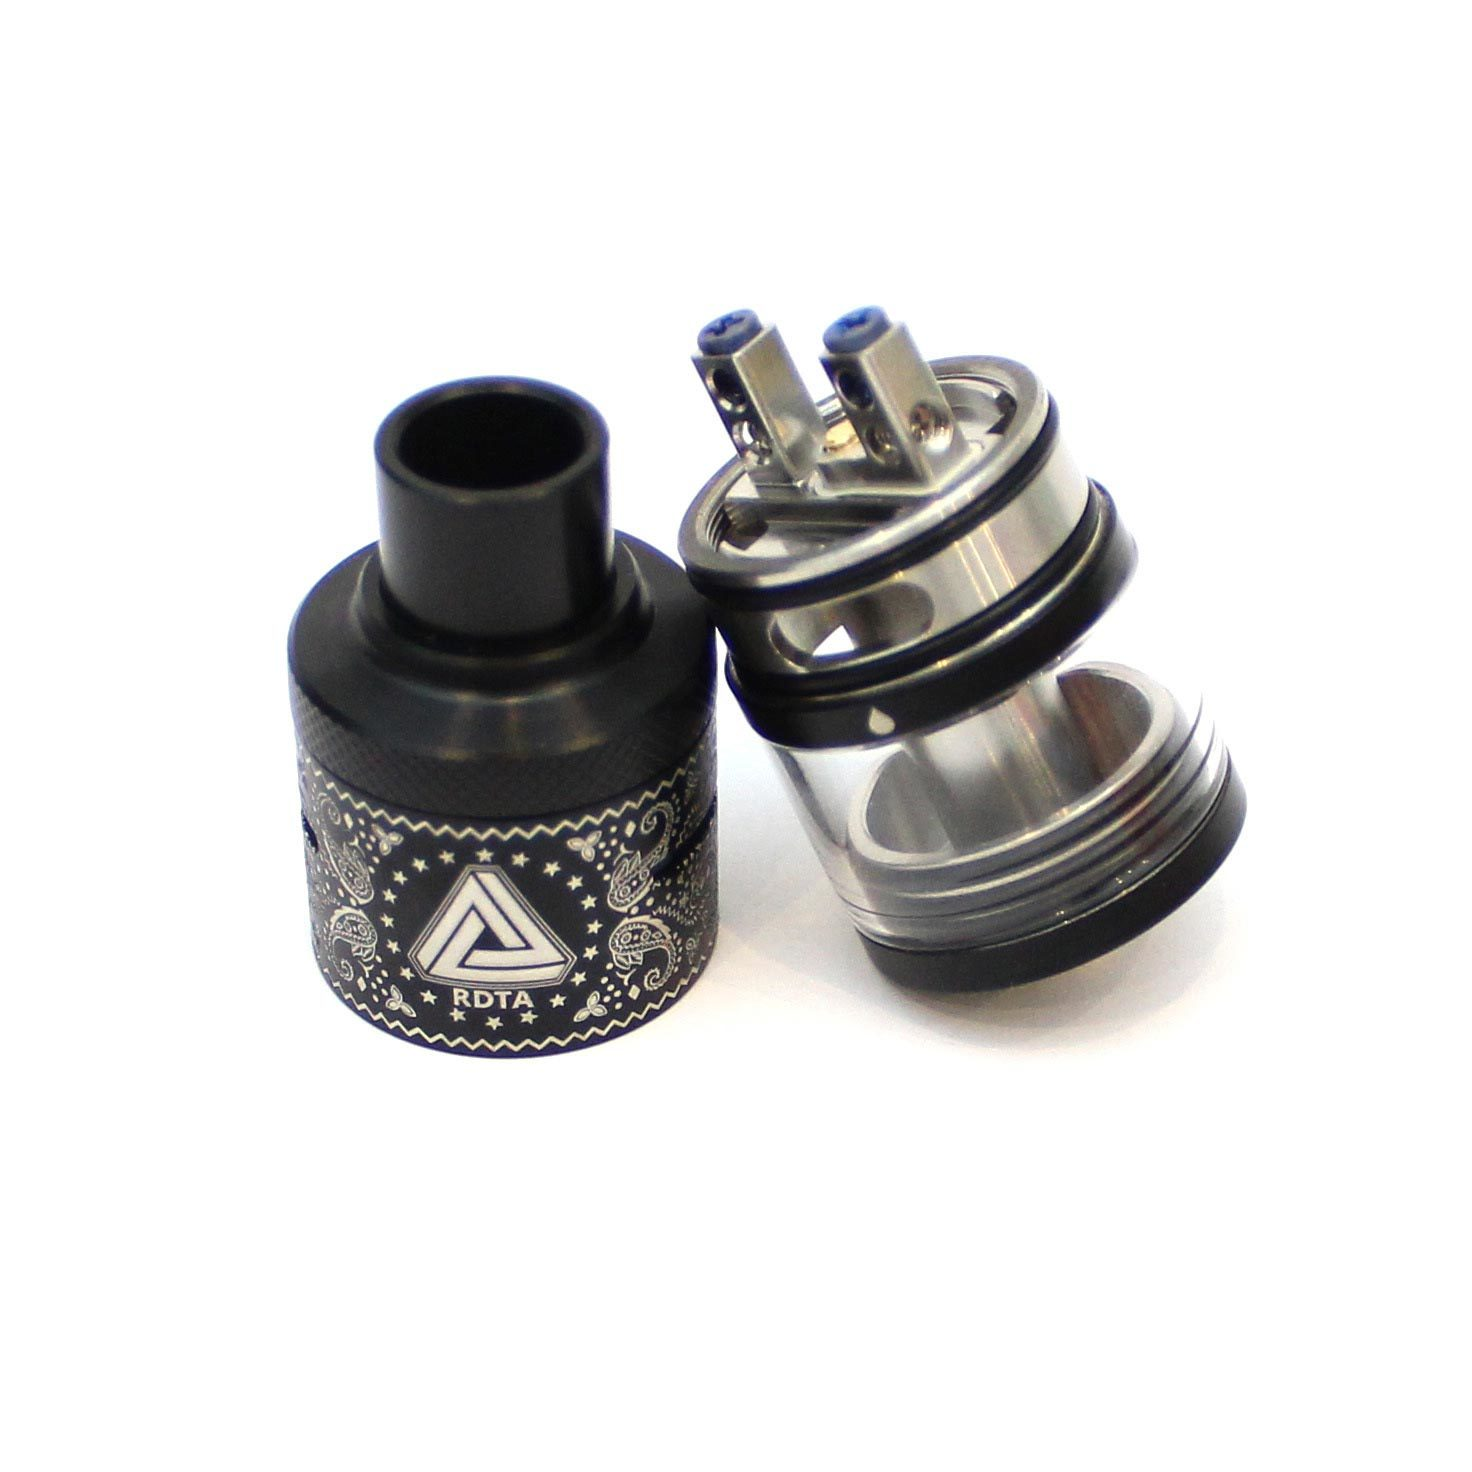 Дрипка Limitless Plus RDTA (Authentic) сбоку